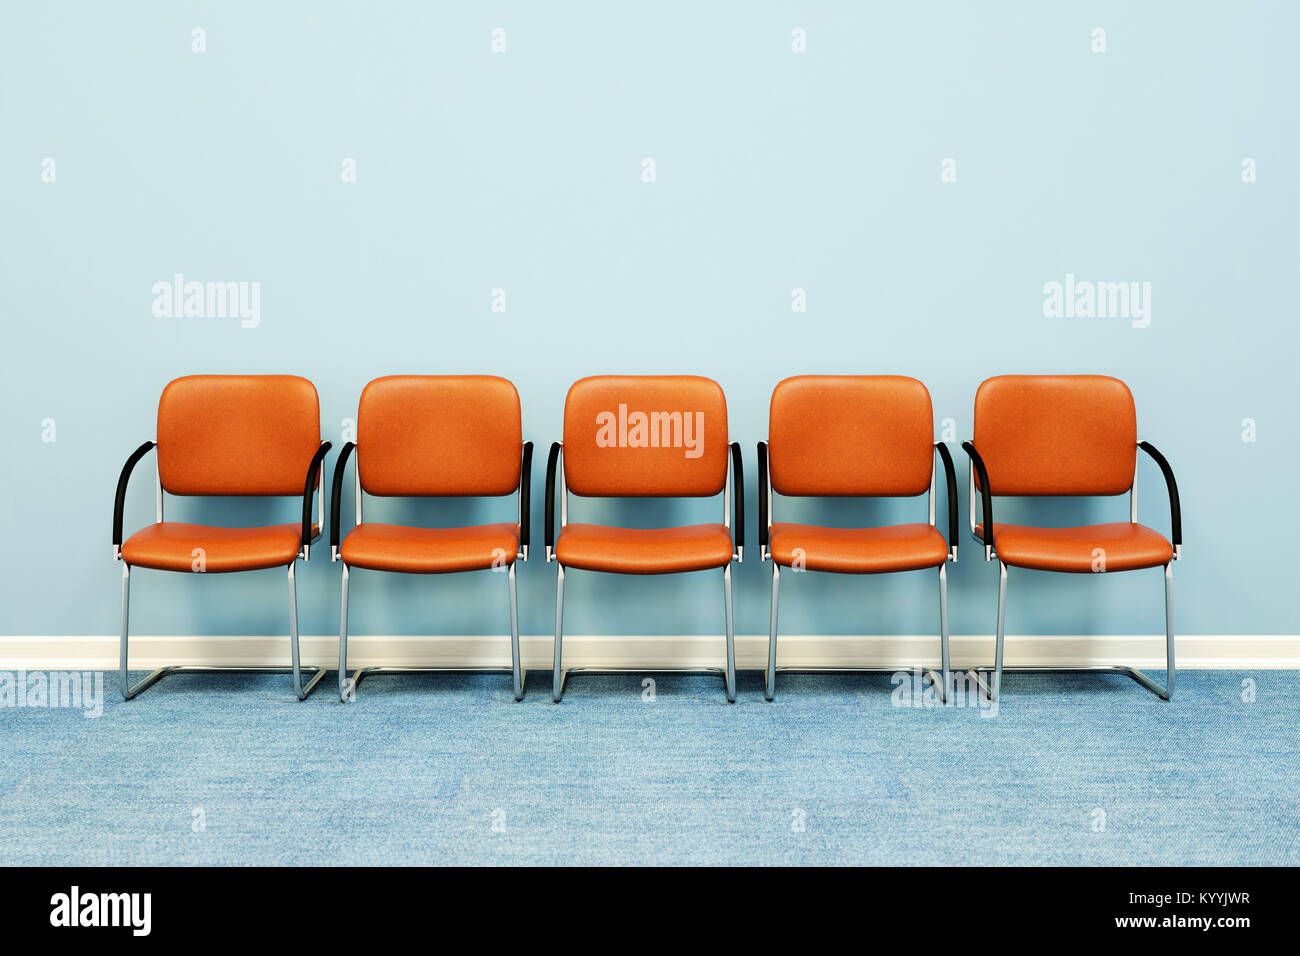 Five waiting room chairs in a row against a wall in an empty room - Stock Image